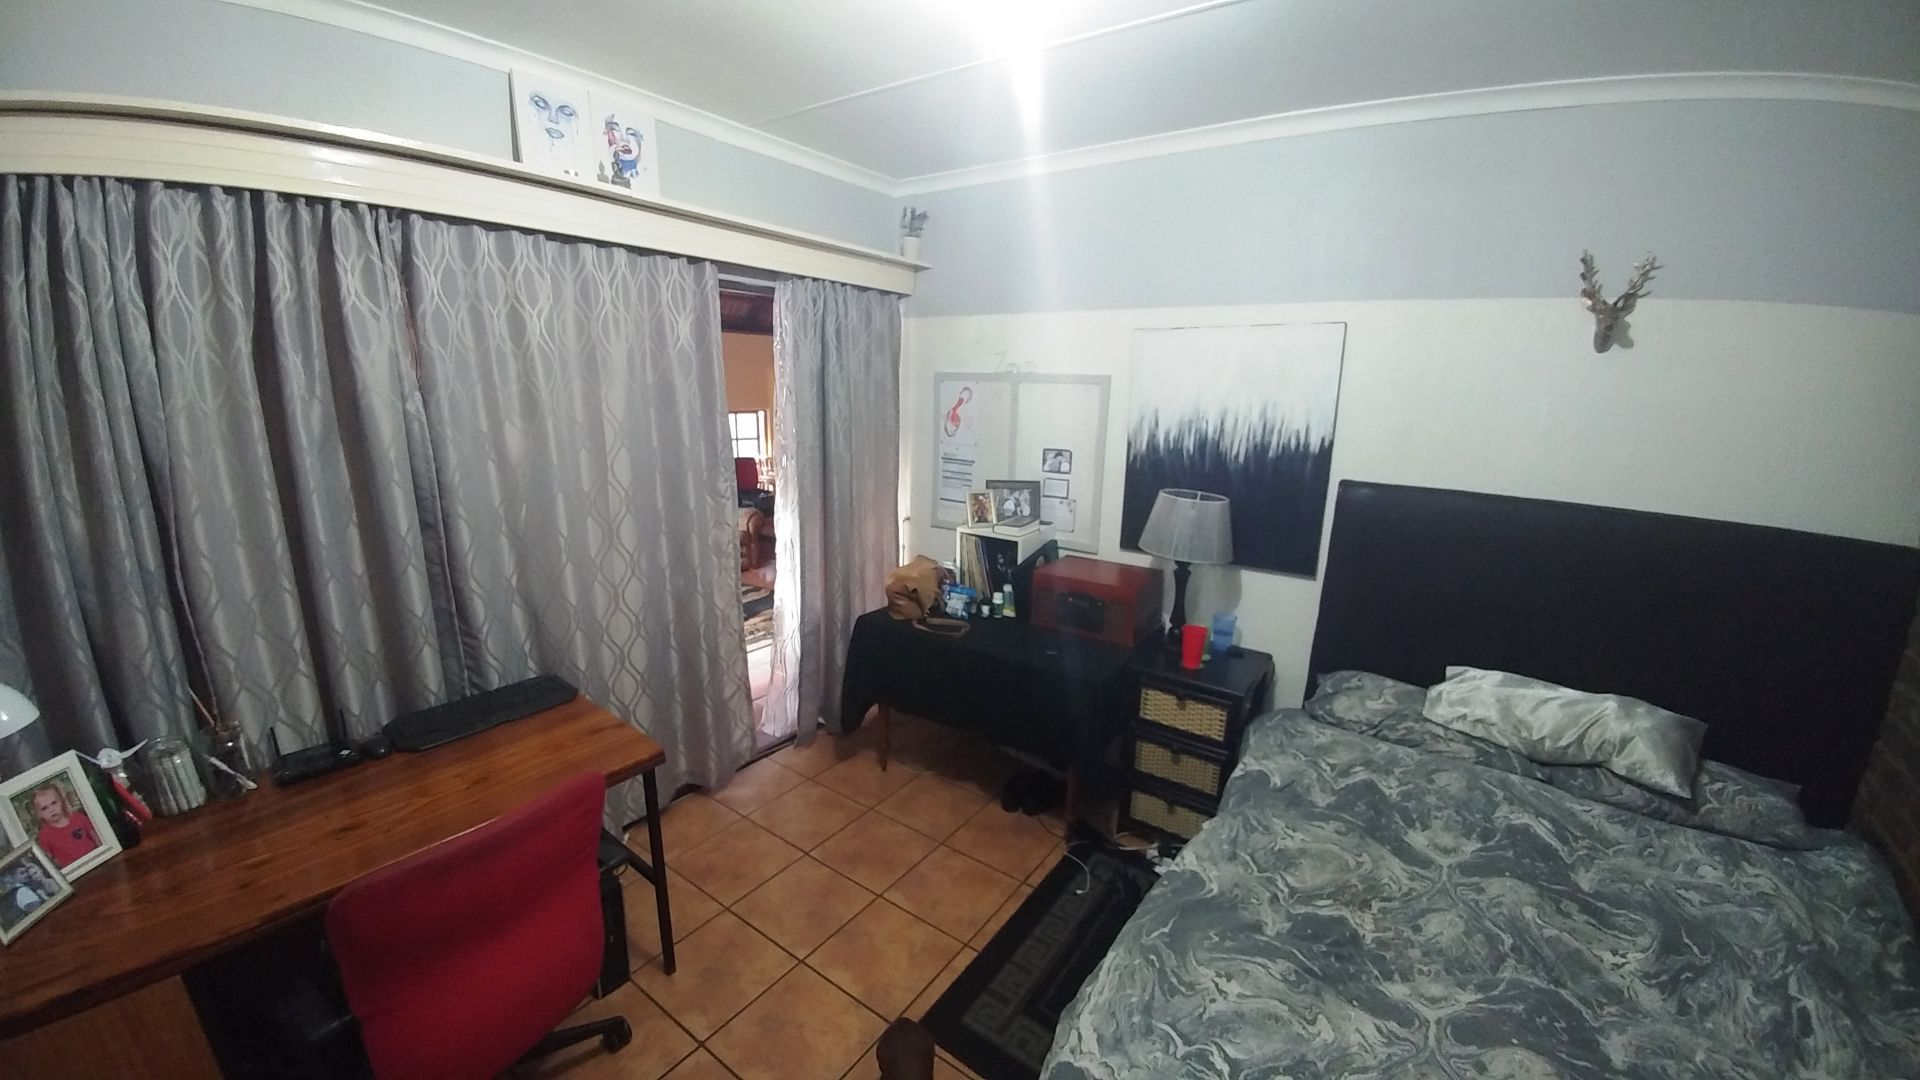 Potchefstroom Central property for sale. Ref No: 13508234. Picture no 13